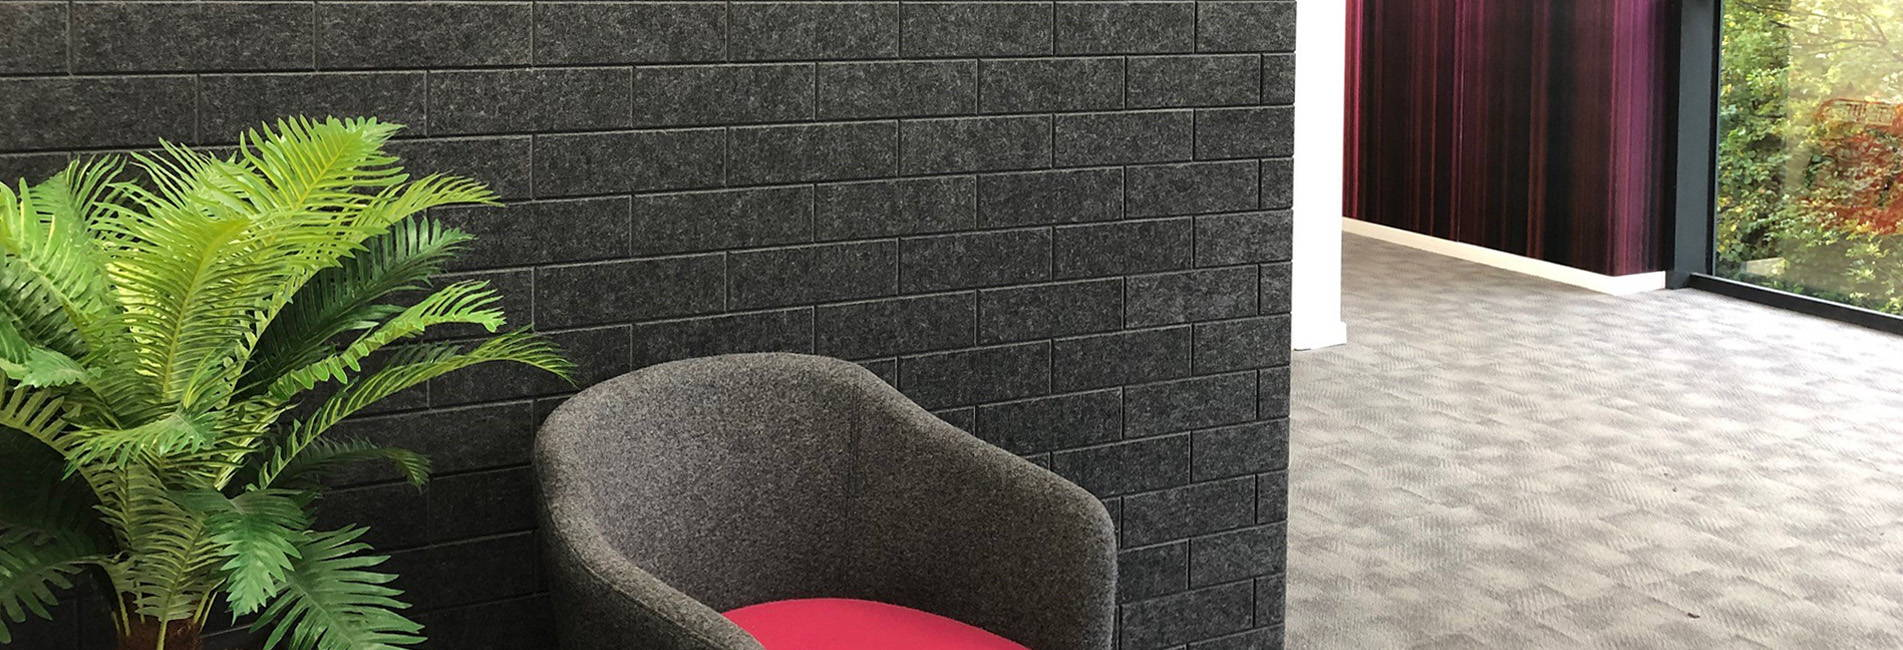 brick tex tiles acoustic wall reception area